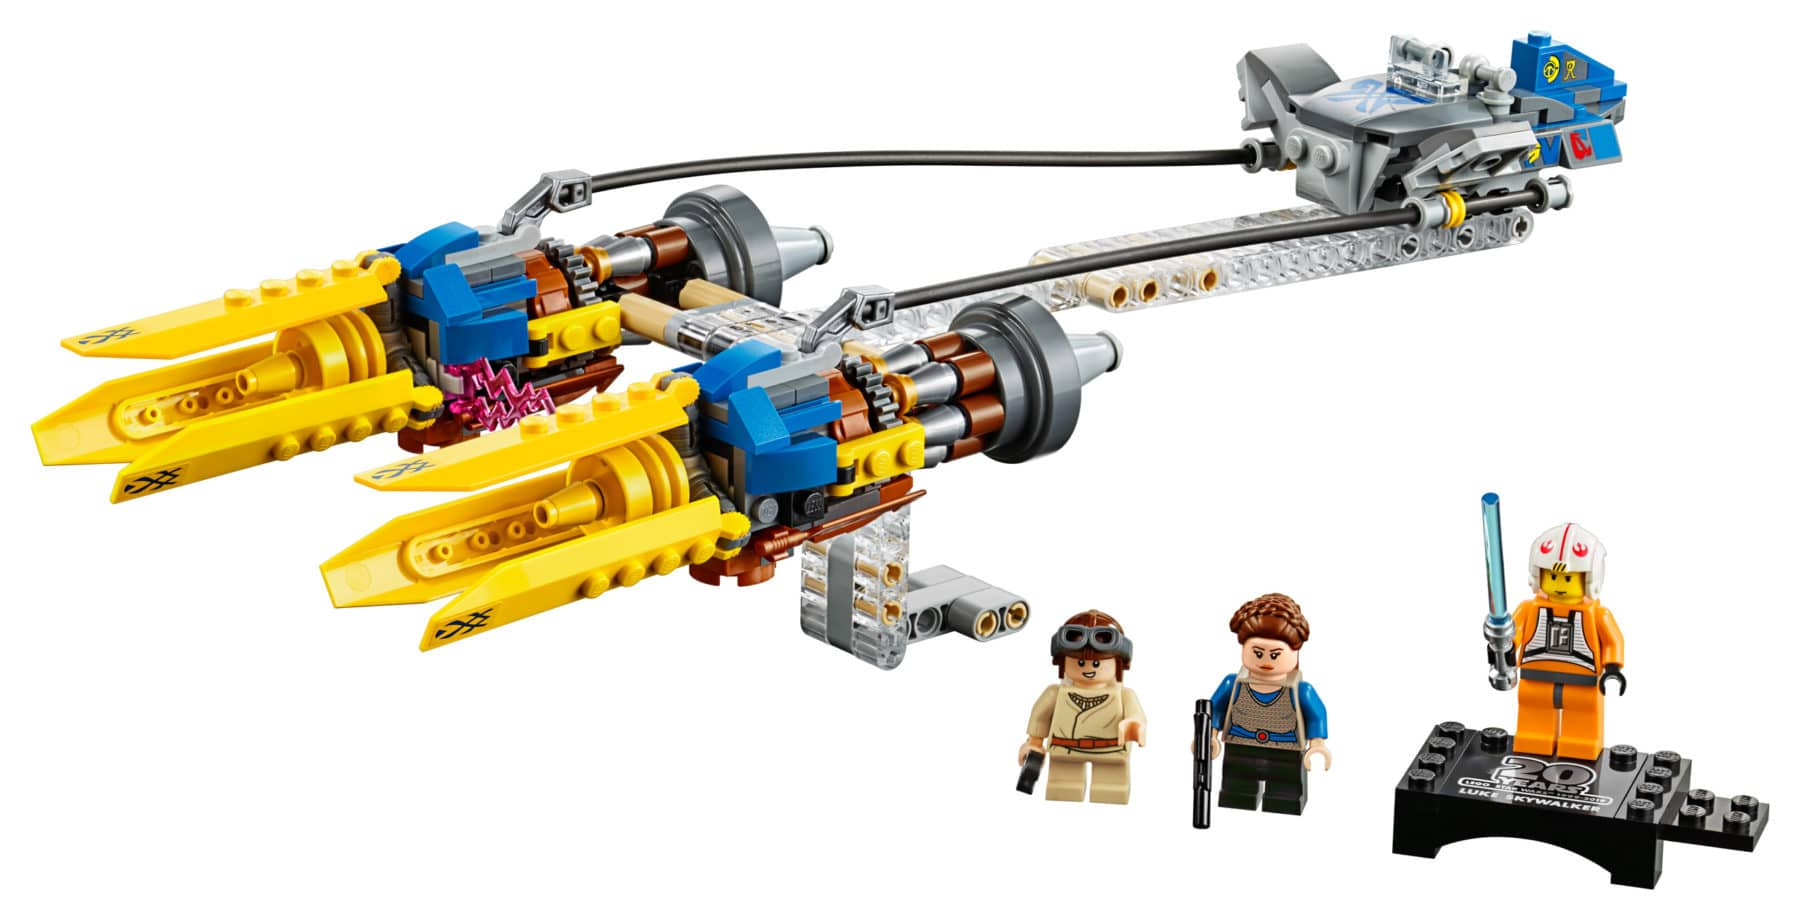 LEGO Star Wars 75258 Anankins Podracer